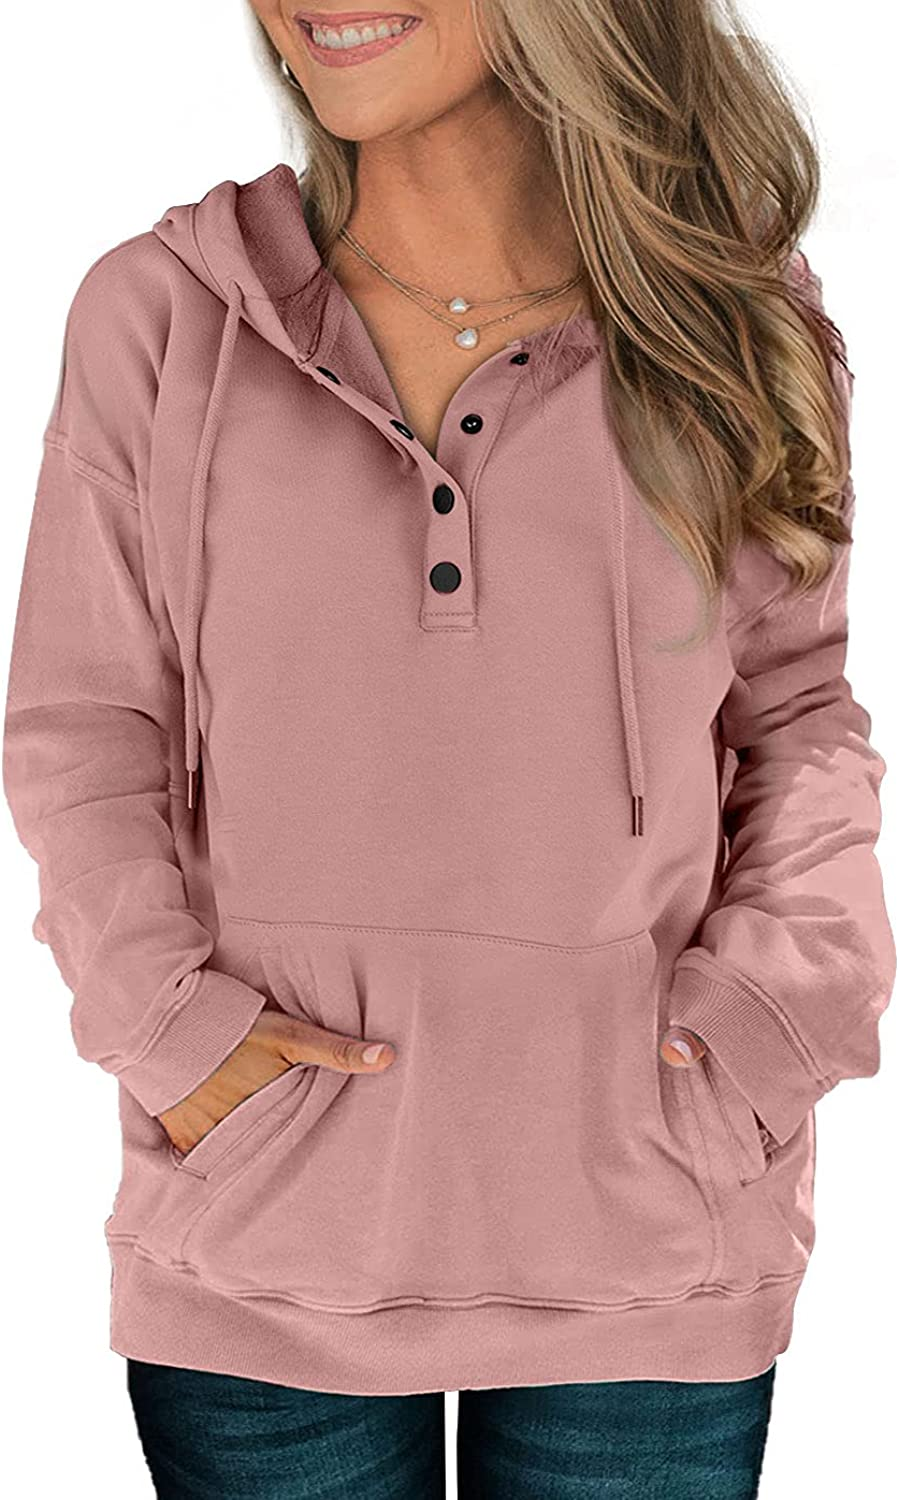 Davenil Womens Hoodies Sweatshirts Casual Long Sleeve Half Zip/Button Down Pullover Drawstring Loose Tops with Pockets